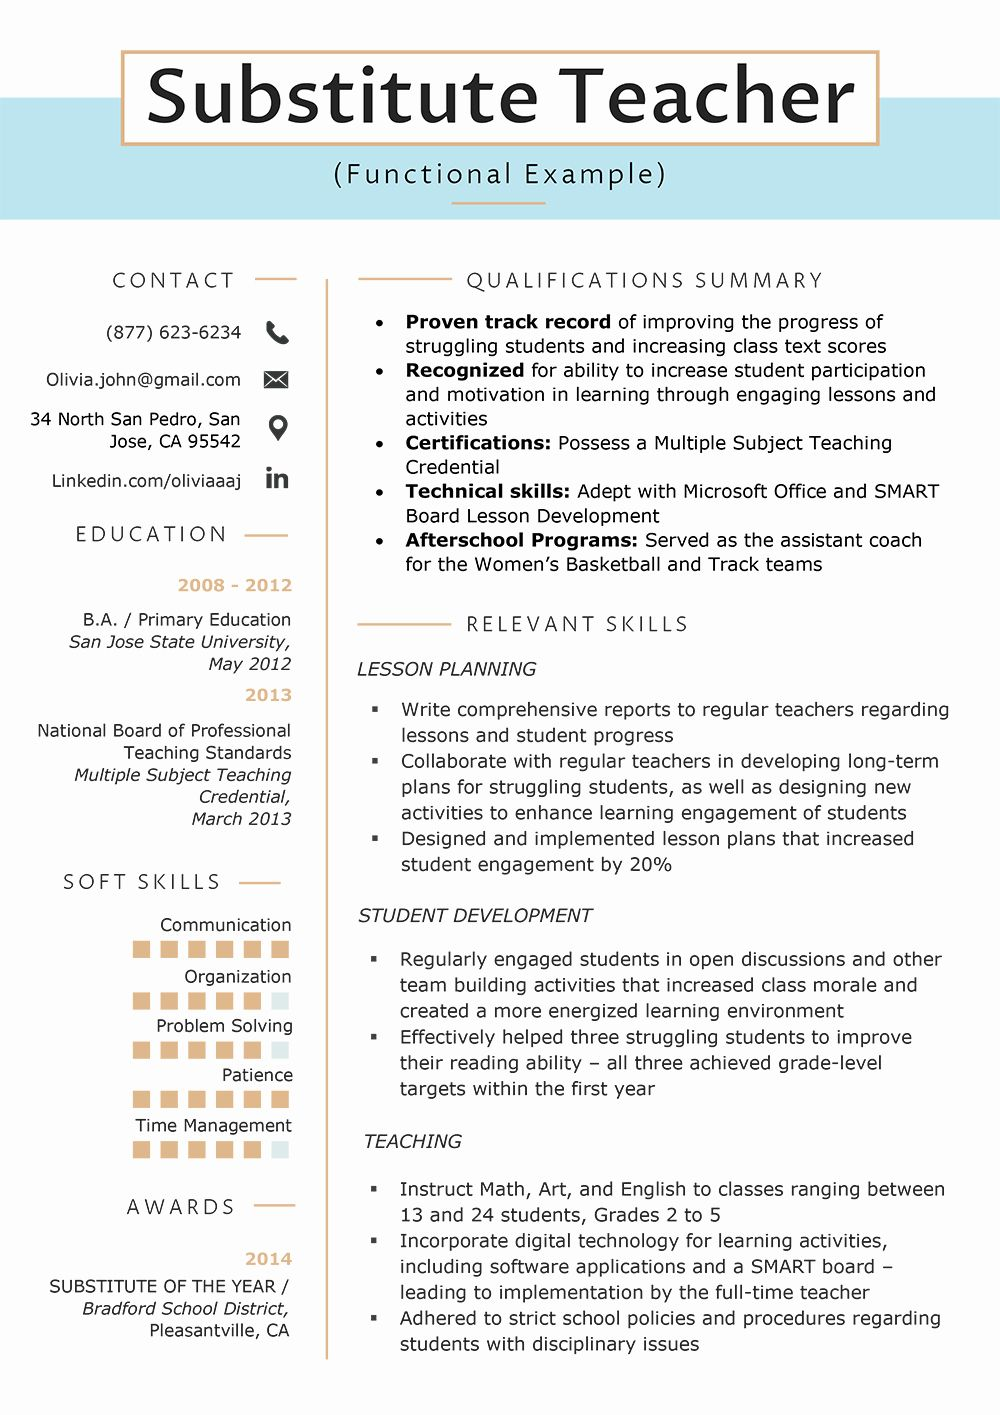 Substitute Teacher Resume Description New How to List